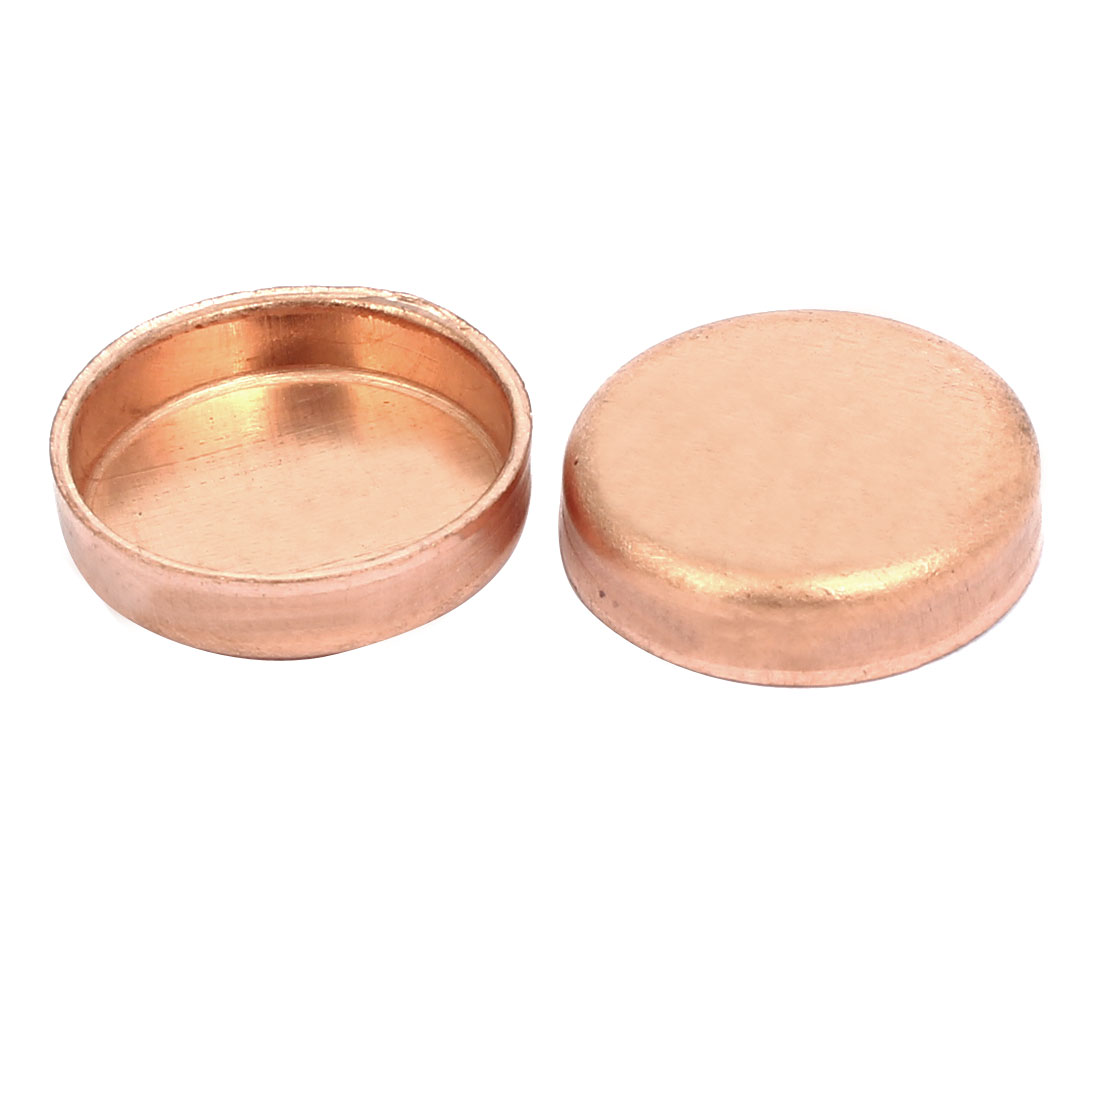 19mmx1mm Copper Pipe Tube End Cap Cover Plumbing Fitting 2pcs